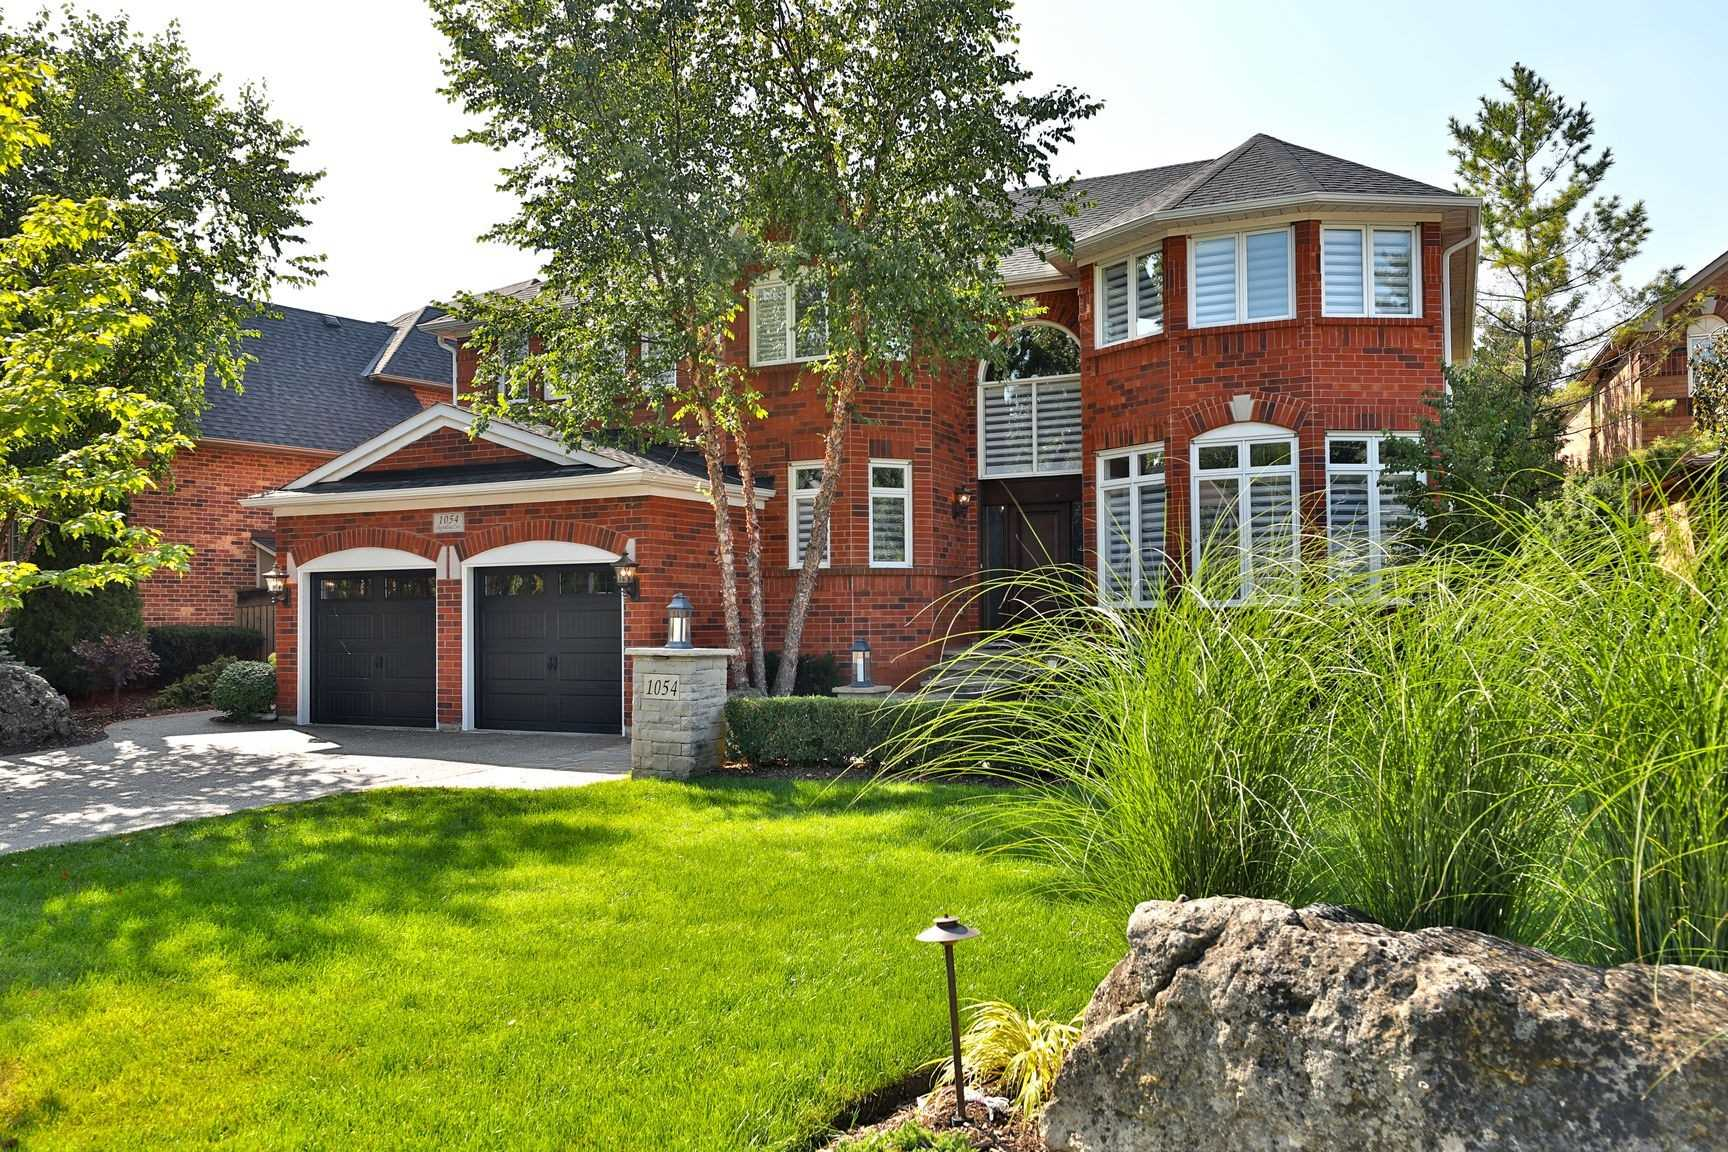 1054 Skyvalley Cres, Oakville